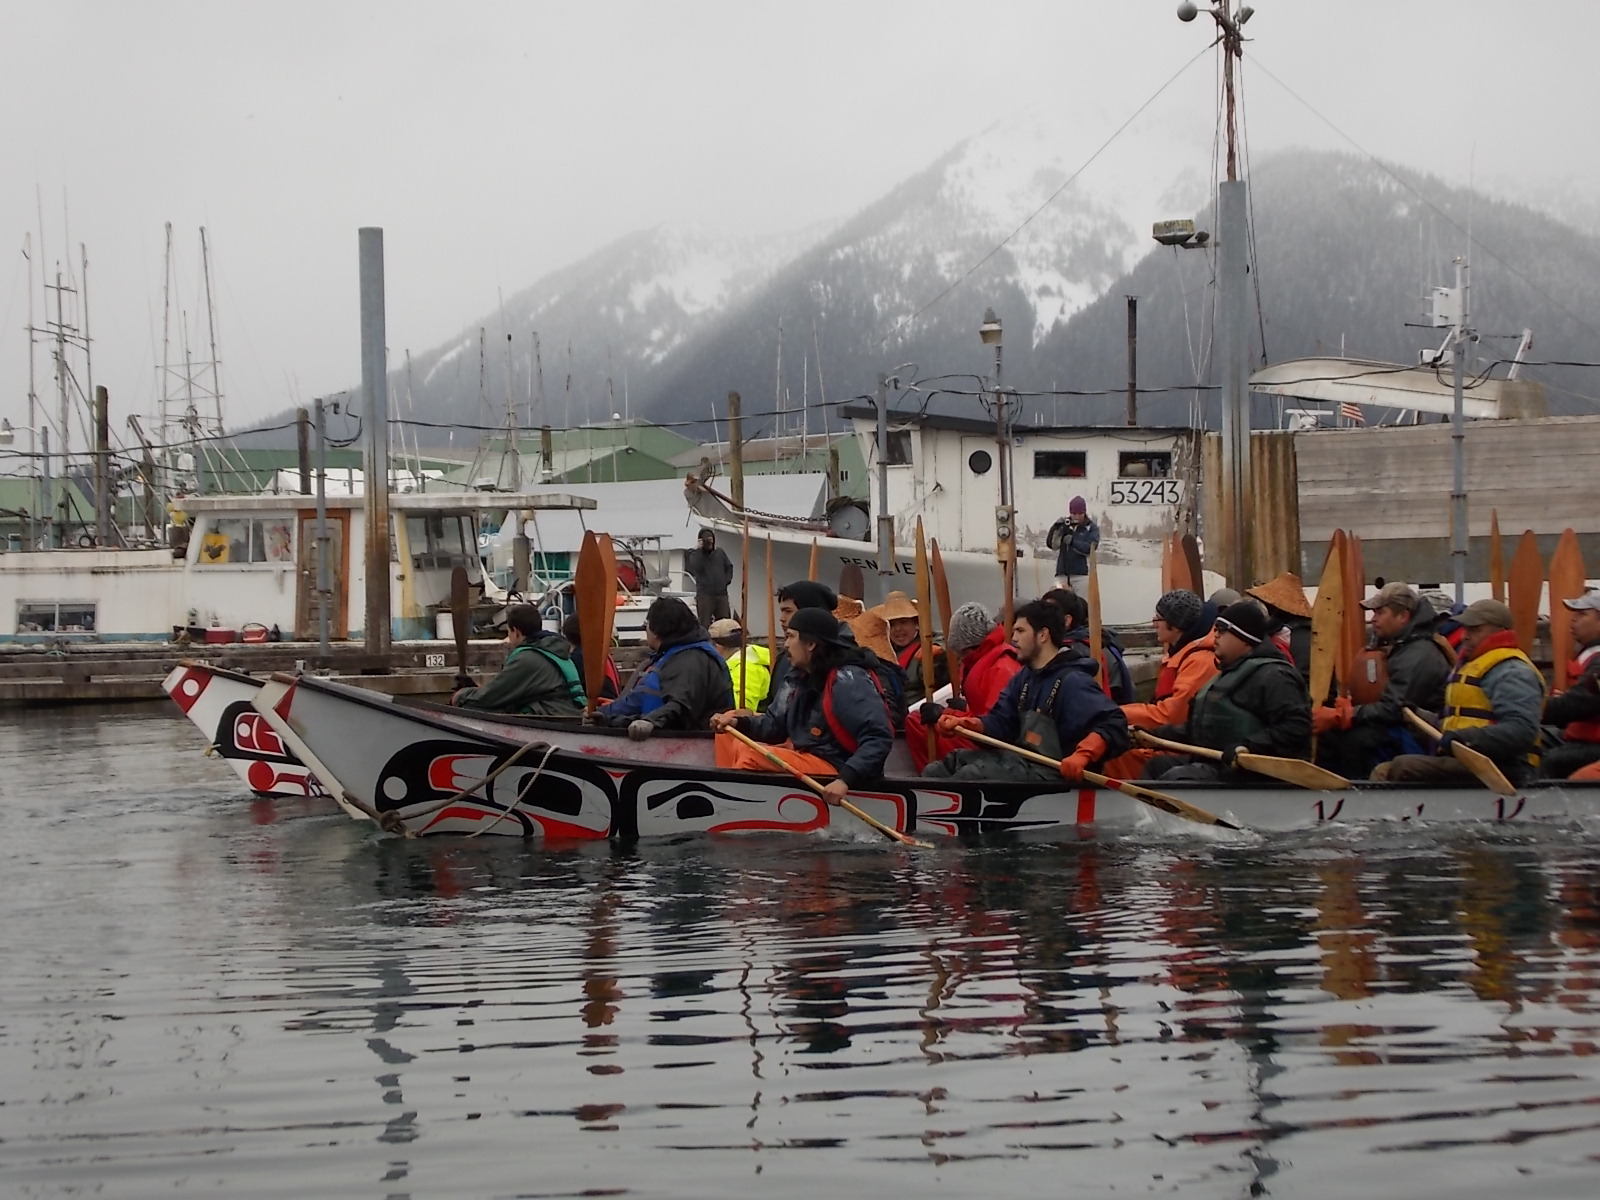 Canoes on historic journey arrive in Petersburg, on way to Wrangell